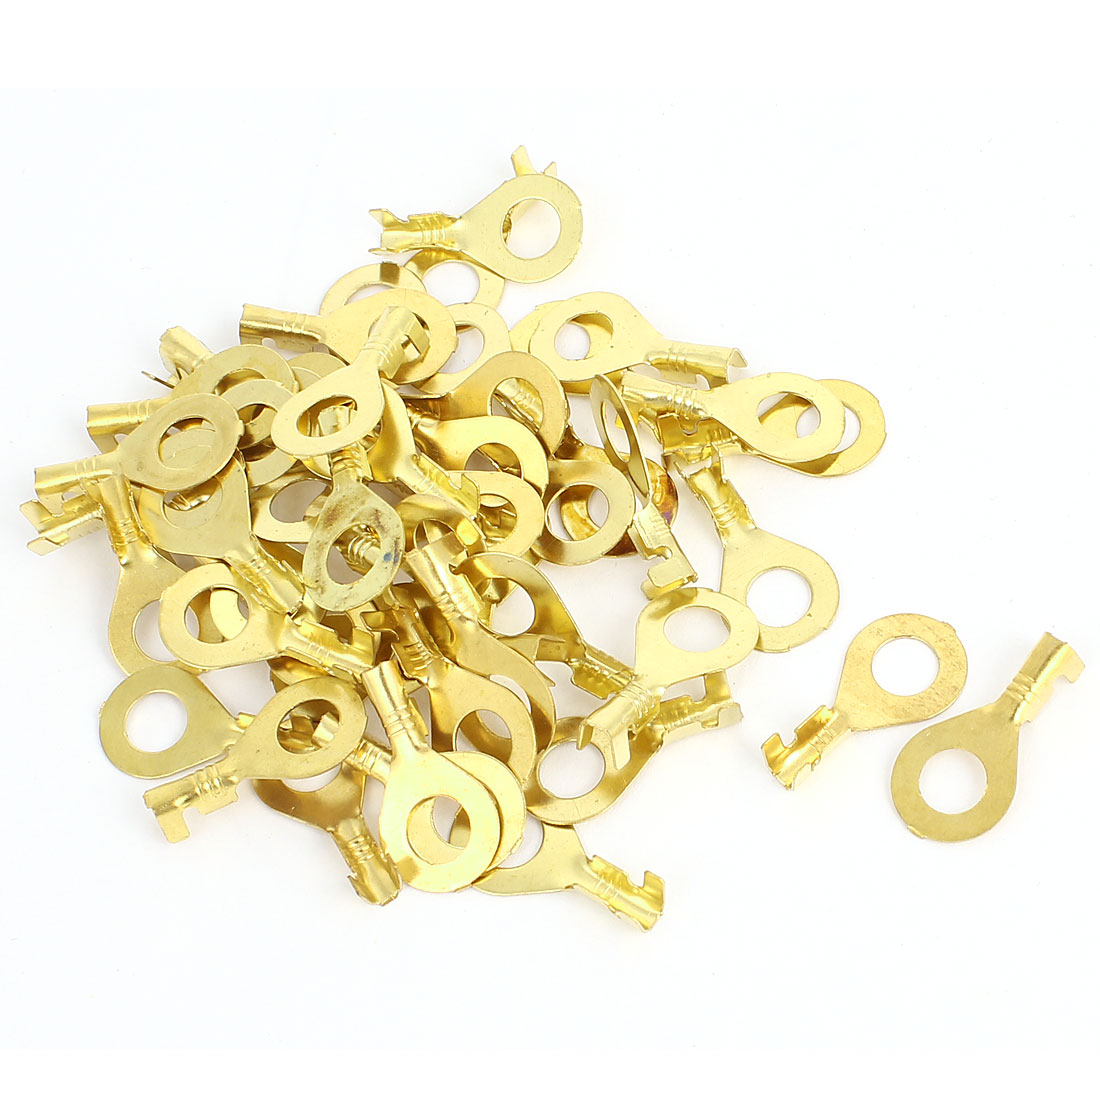 50Pcs 17Amp M6 Stud AWG9-3mm Wire Cable Connecting Copper Tongue Rewirable Non-insulated Ring Terminals